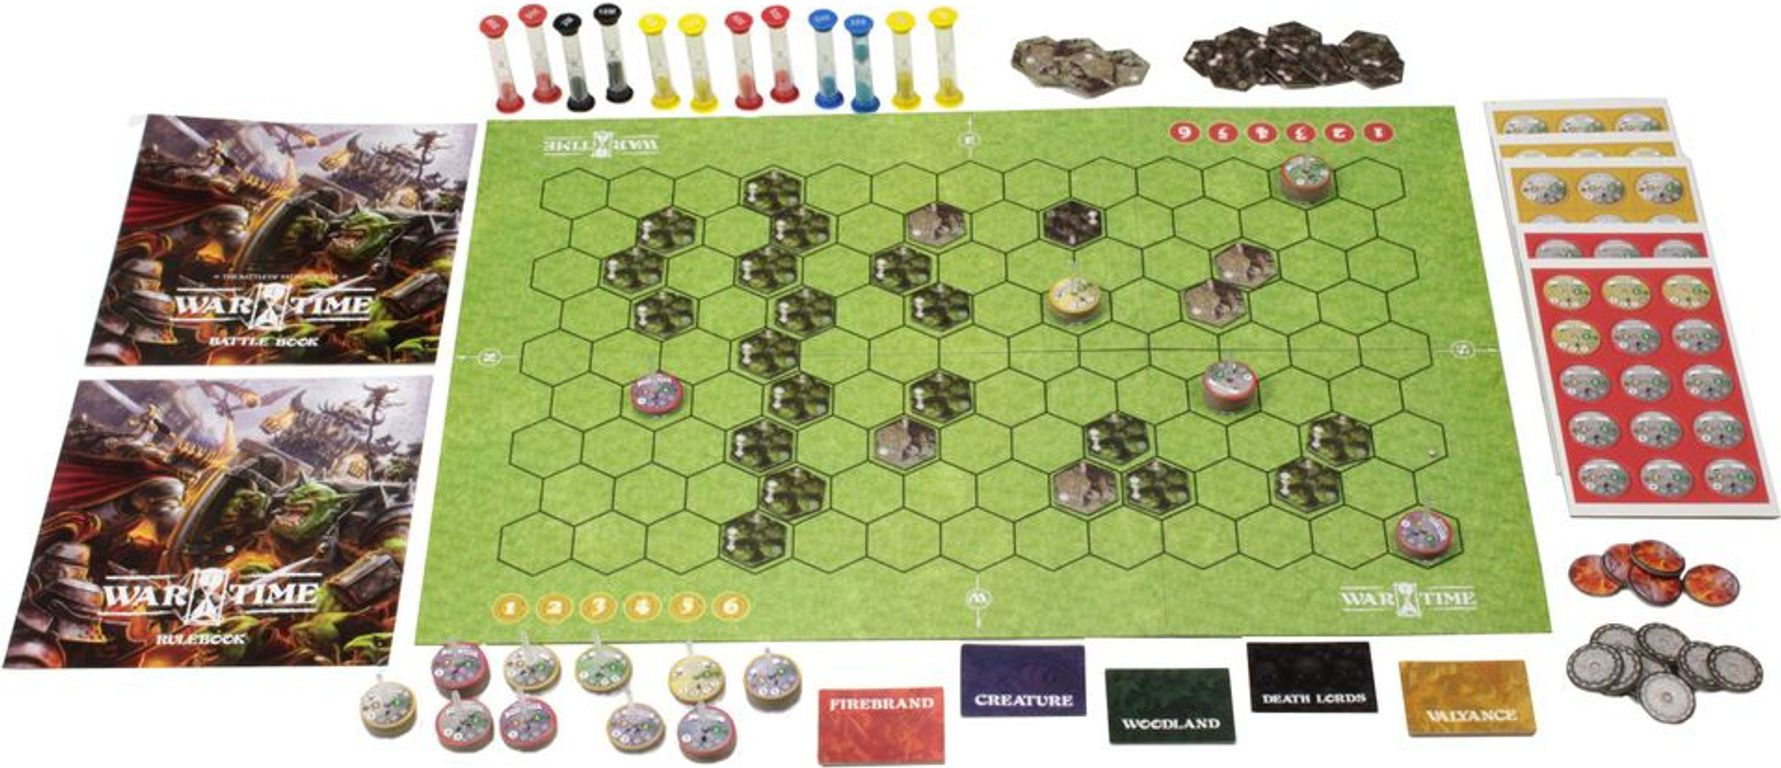 Wartime: The Battle of Valyance Vale components